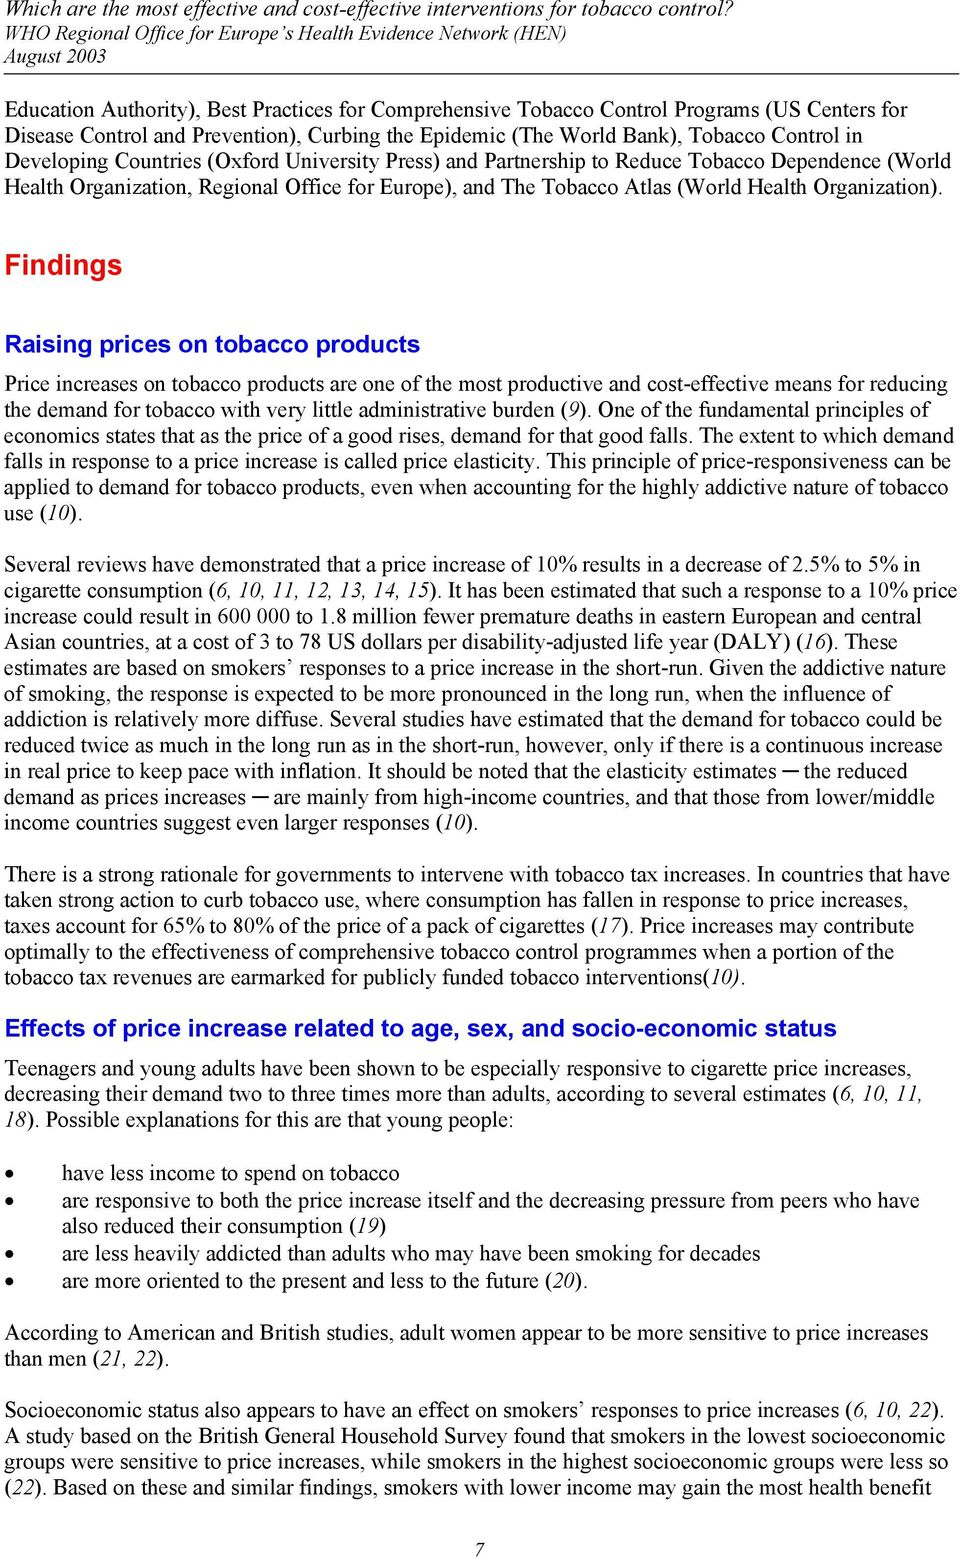 Findings Raising prices on tobacco products Price increases on tobacco products are one of the most productive and cost-effective means for reducing the demand for tobacco with very little